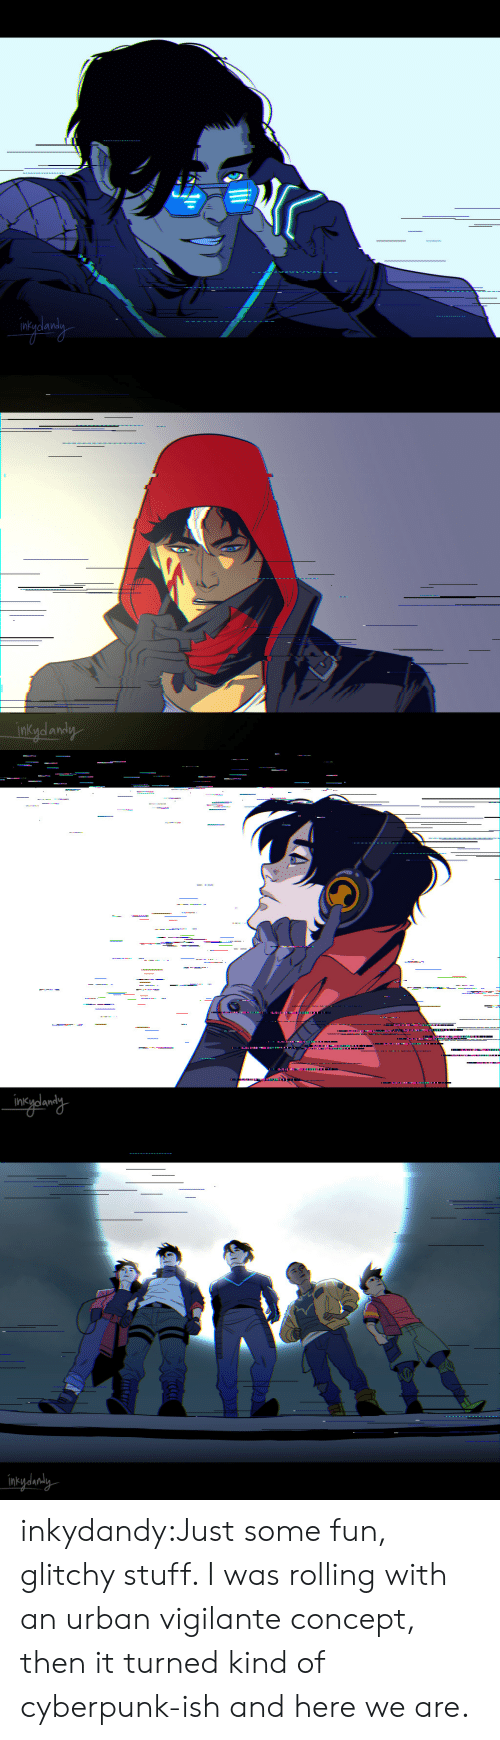 Target, Tumblr, and Blog: inkydandy   ------.-  .  intydanaly inkydandy:Just some fun, glitchy stuff. I was rolling with an urban vigilante concept, then it turned kind of cyberpunk-ish and here we are.